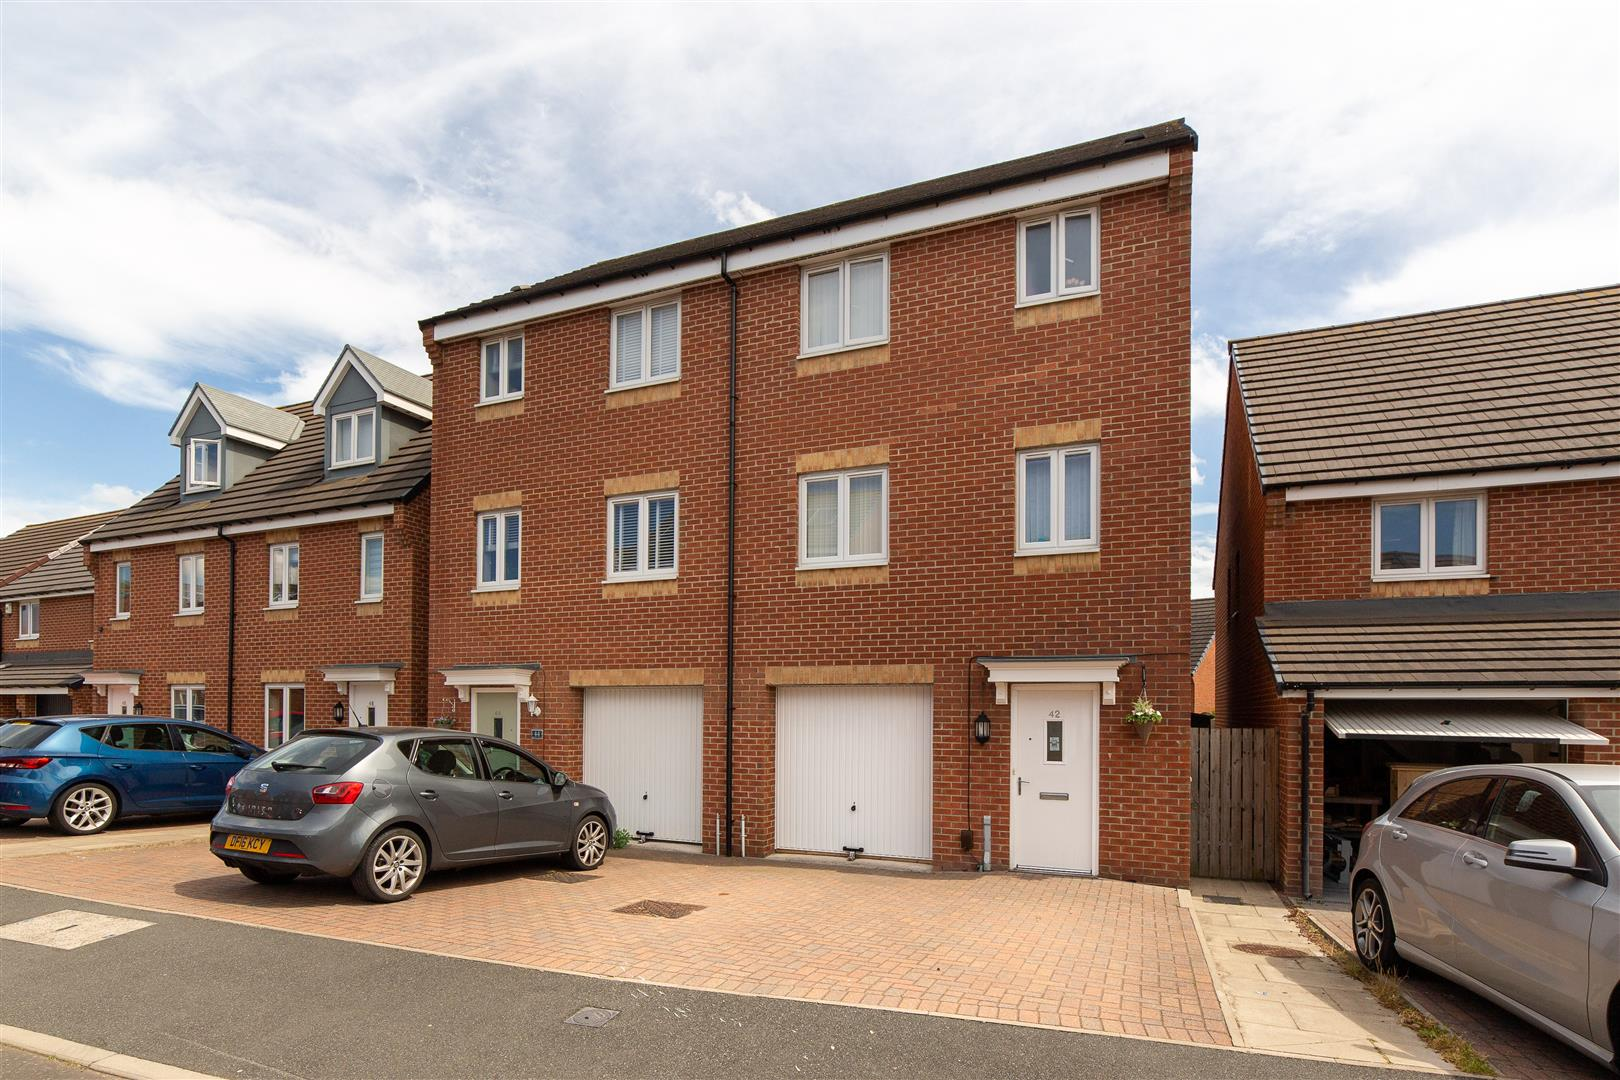 4 bed town house for sale in Brookville Crescent, Westerhope, NE5